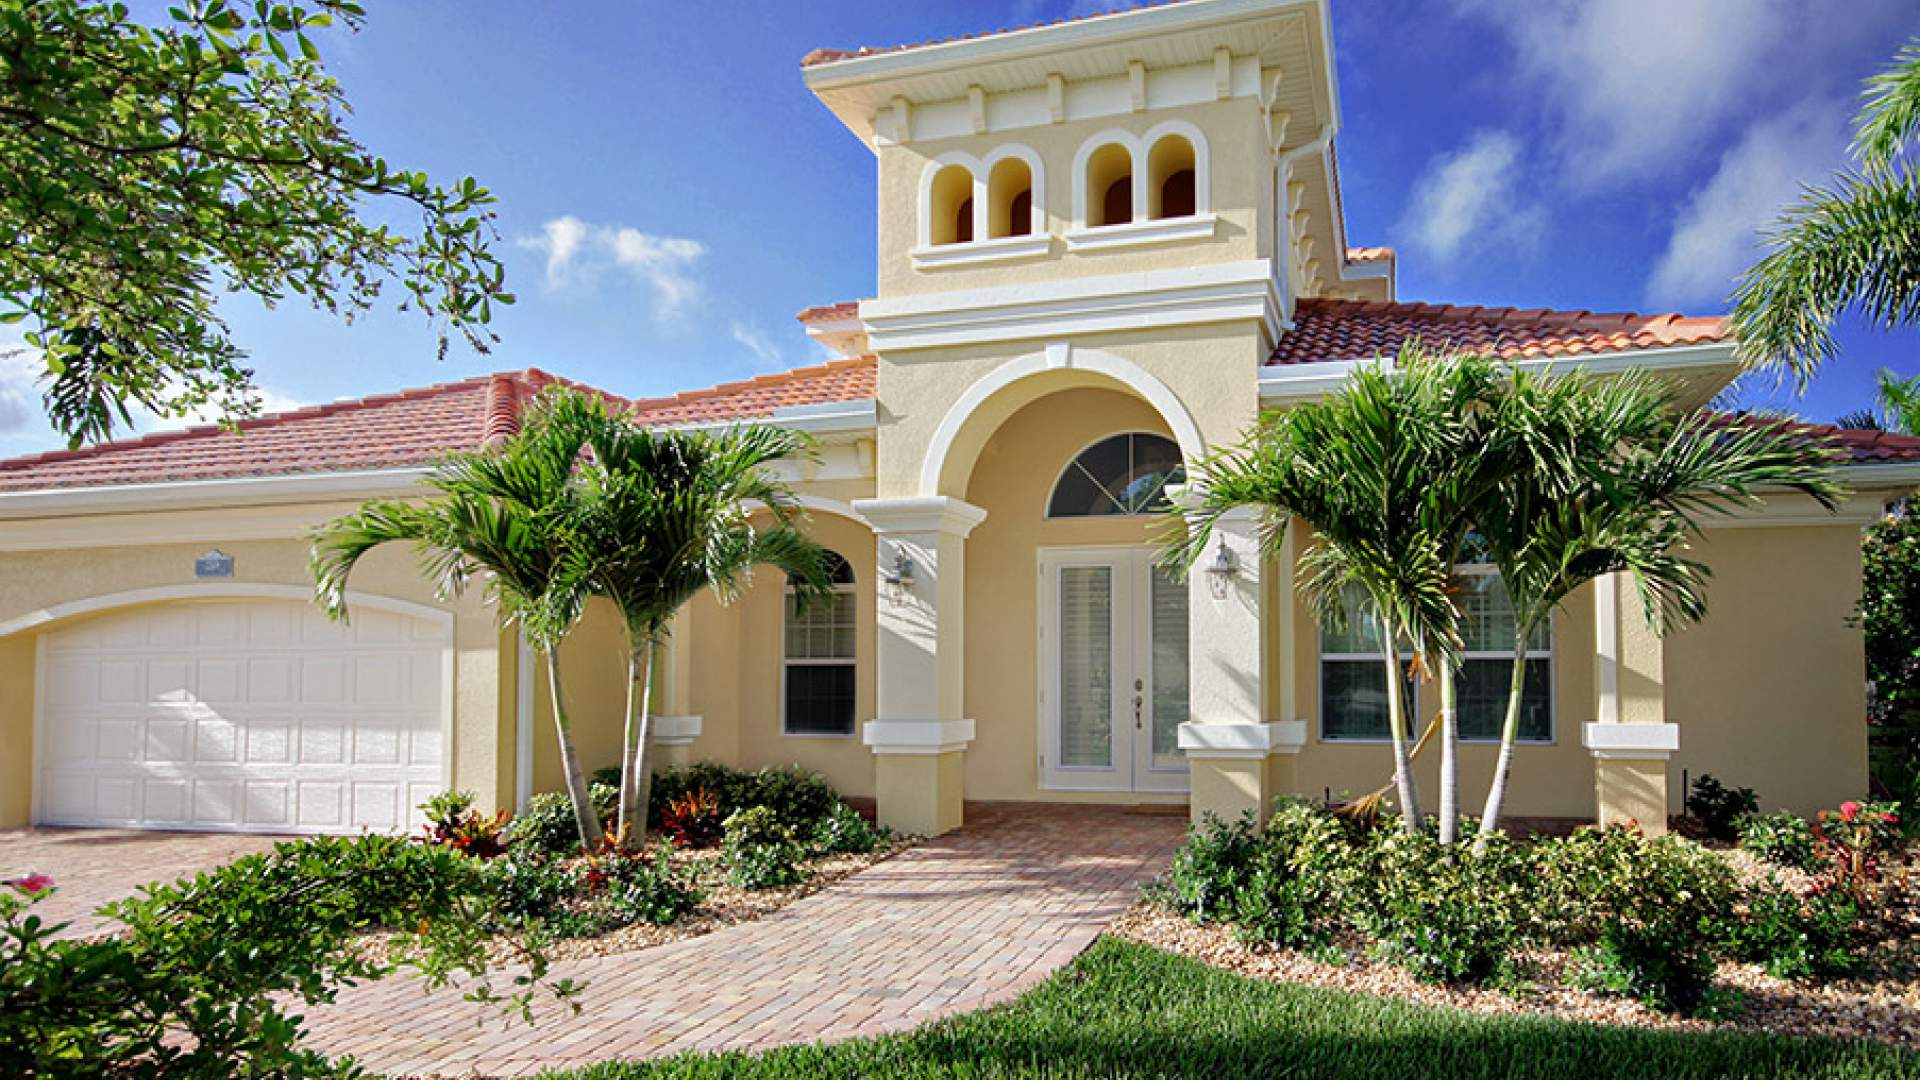 A vacation home for demanding guests, located in a beautiful neighborhood in SW Cape Coral